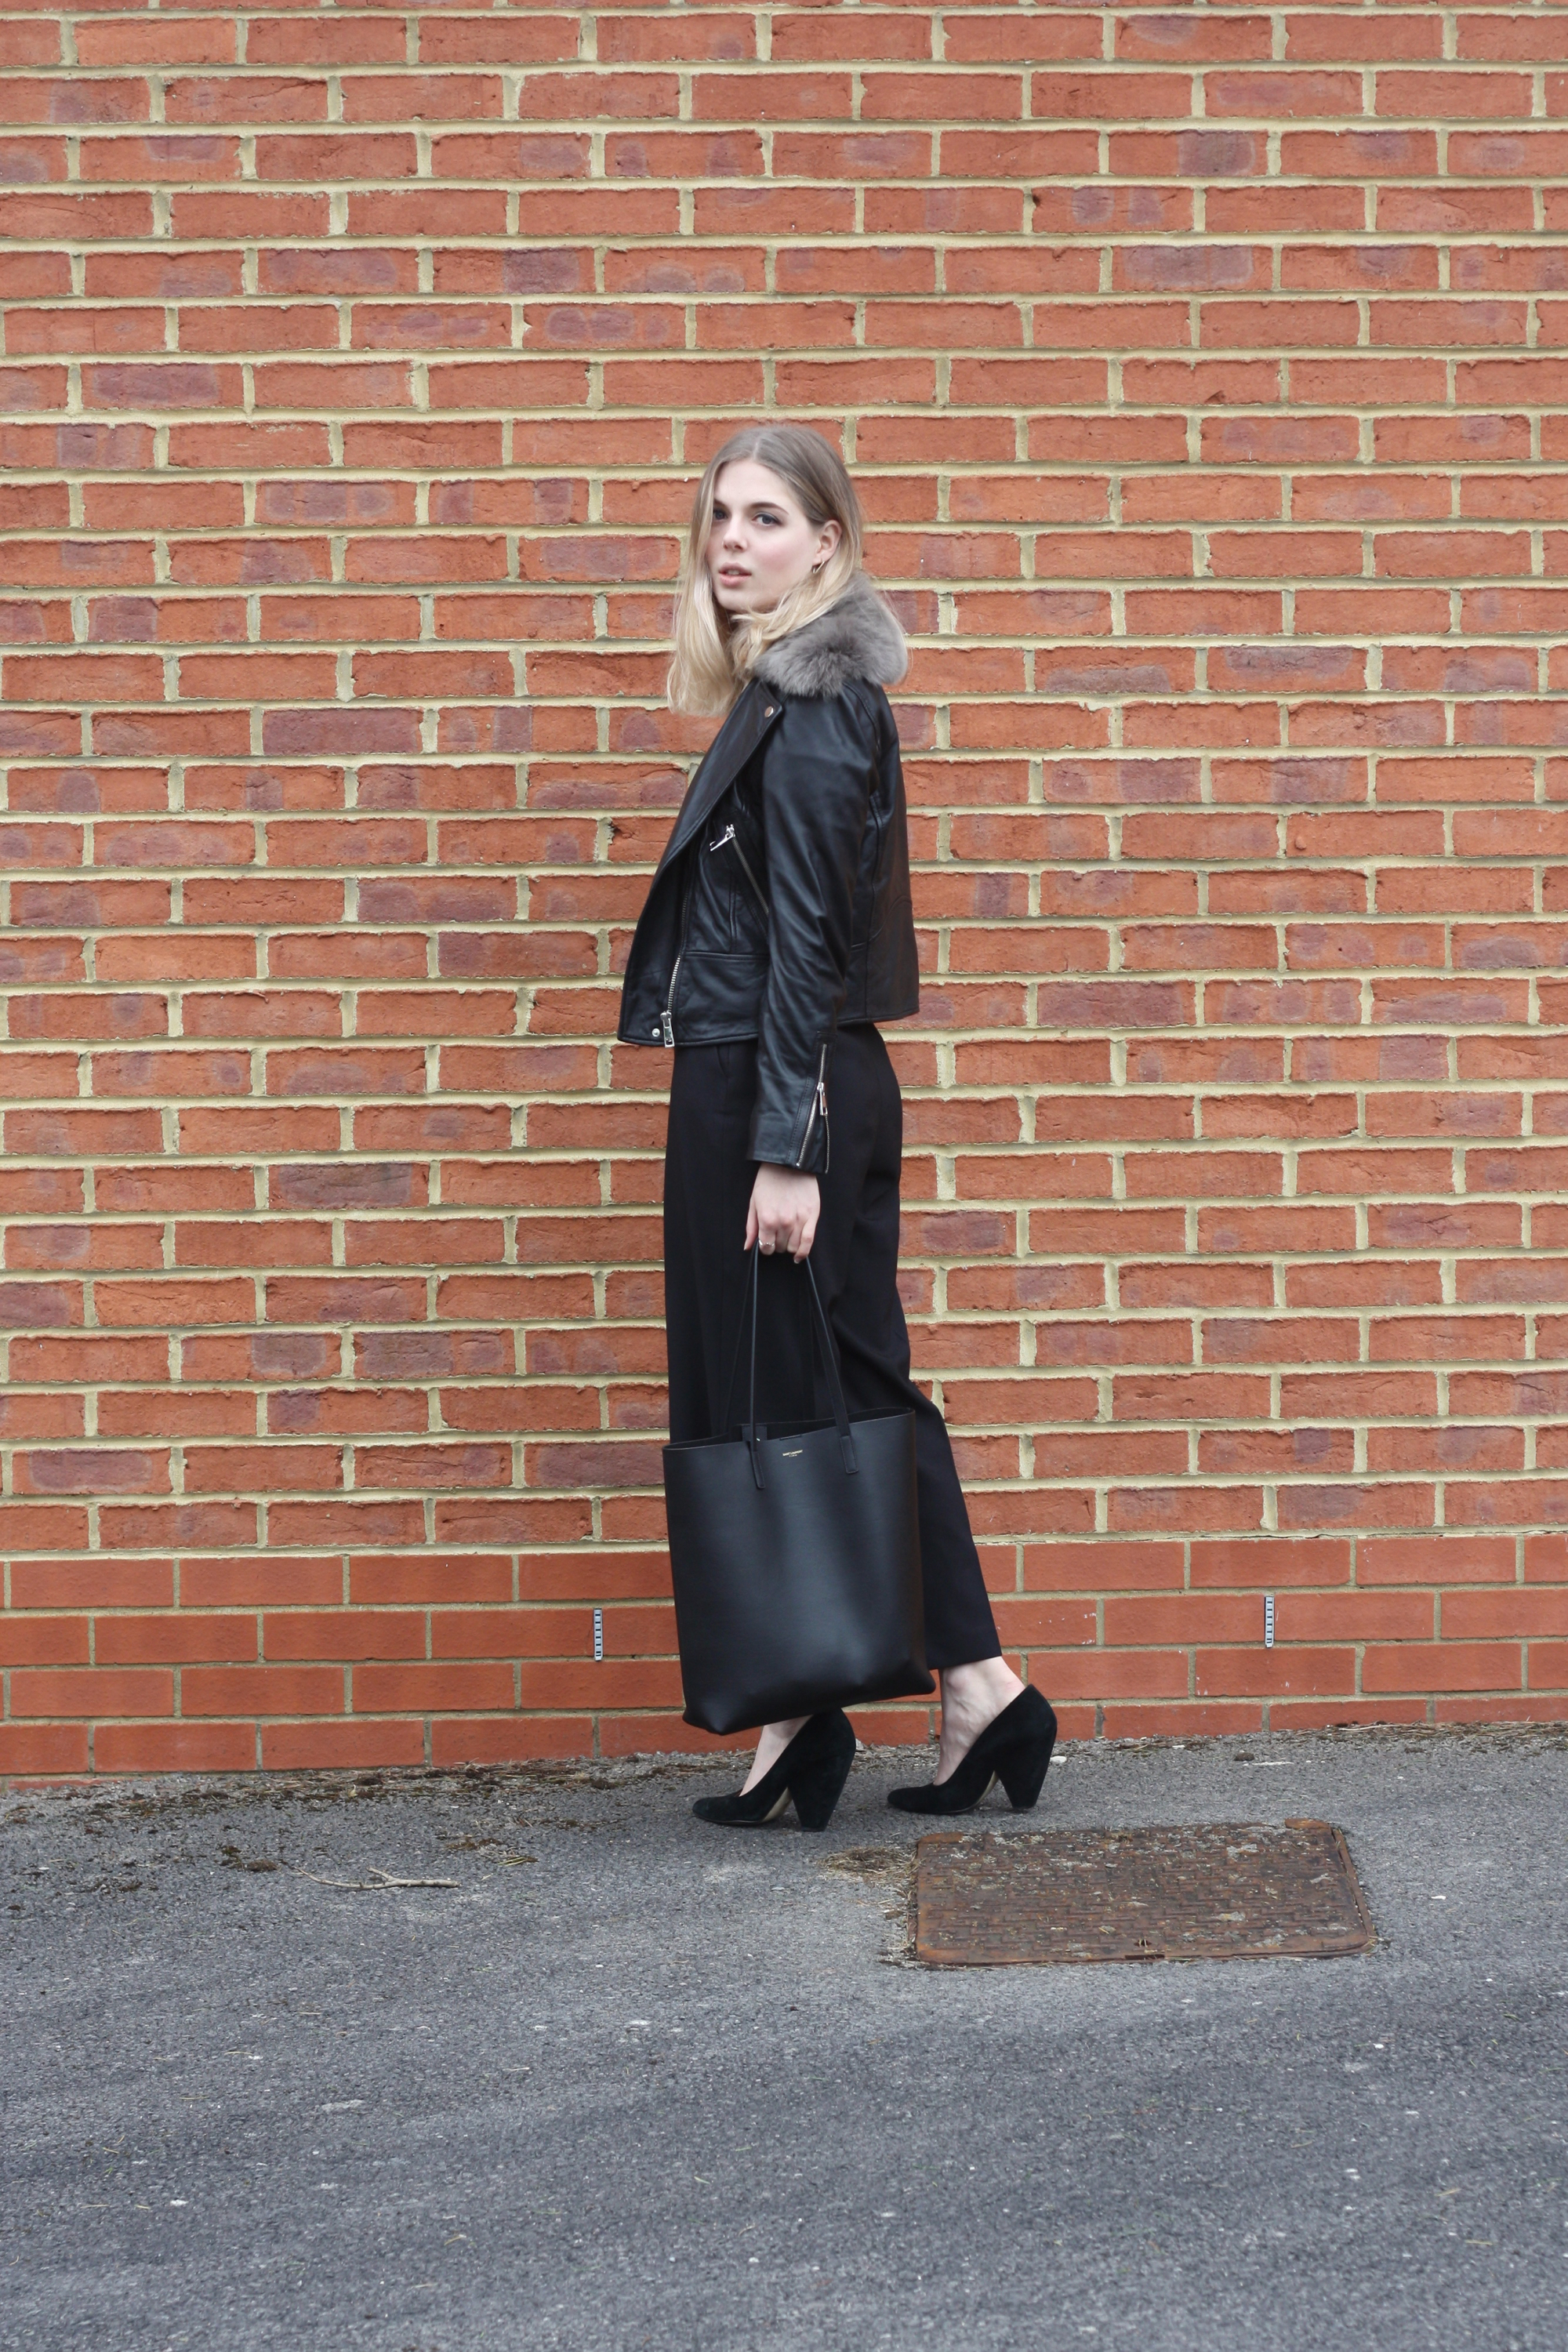 Zara black culottes, Saint Laurent black leather tote and Whistles suede court shoes